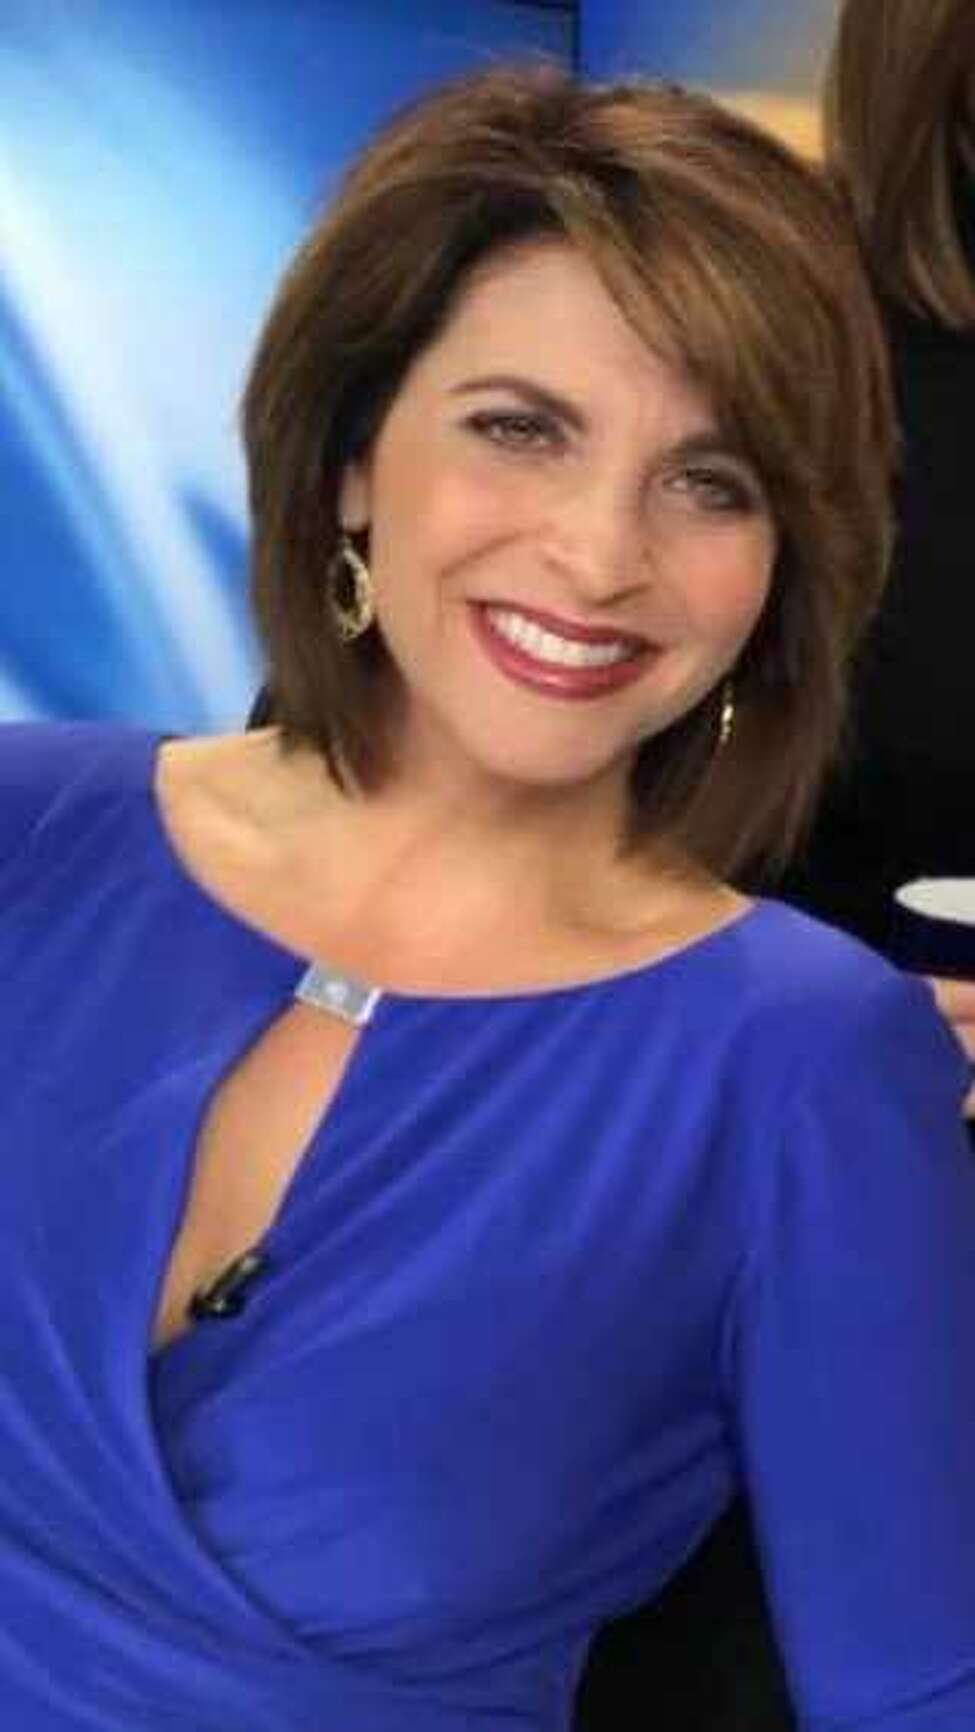 Click through the slideshow to learn 20 things you don't know about Christina Arangio, co-anchor on News10 ABC weekday mornings.